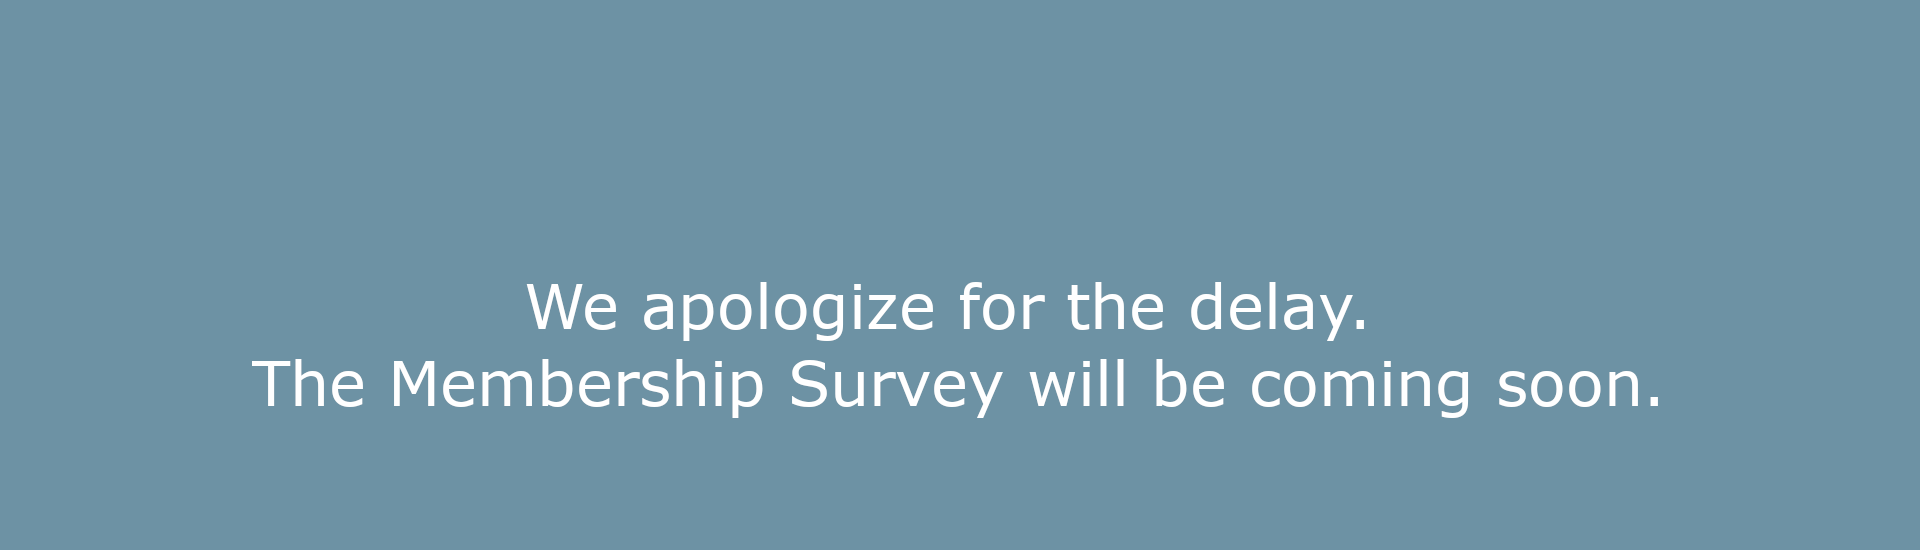 We apologize for the delay. The Membership Survey will be coming soon.